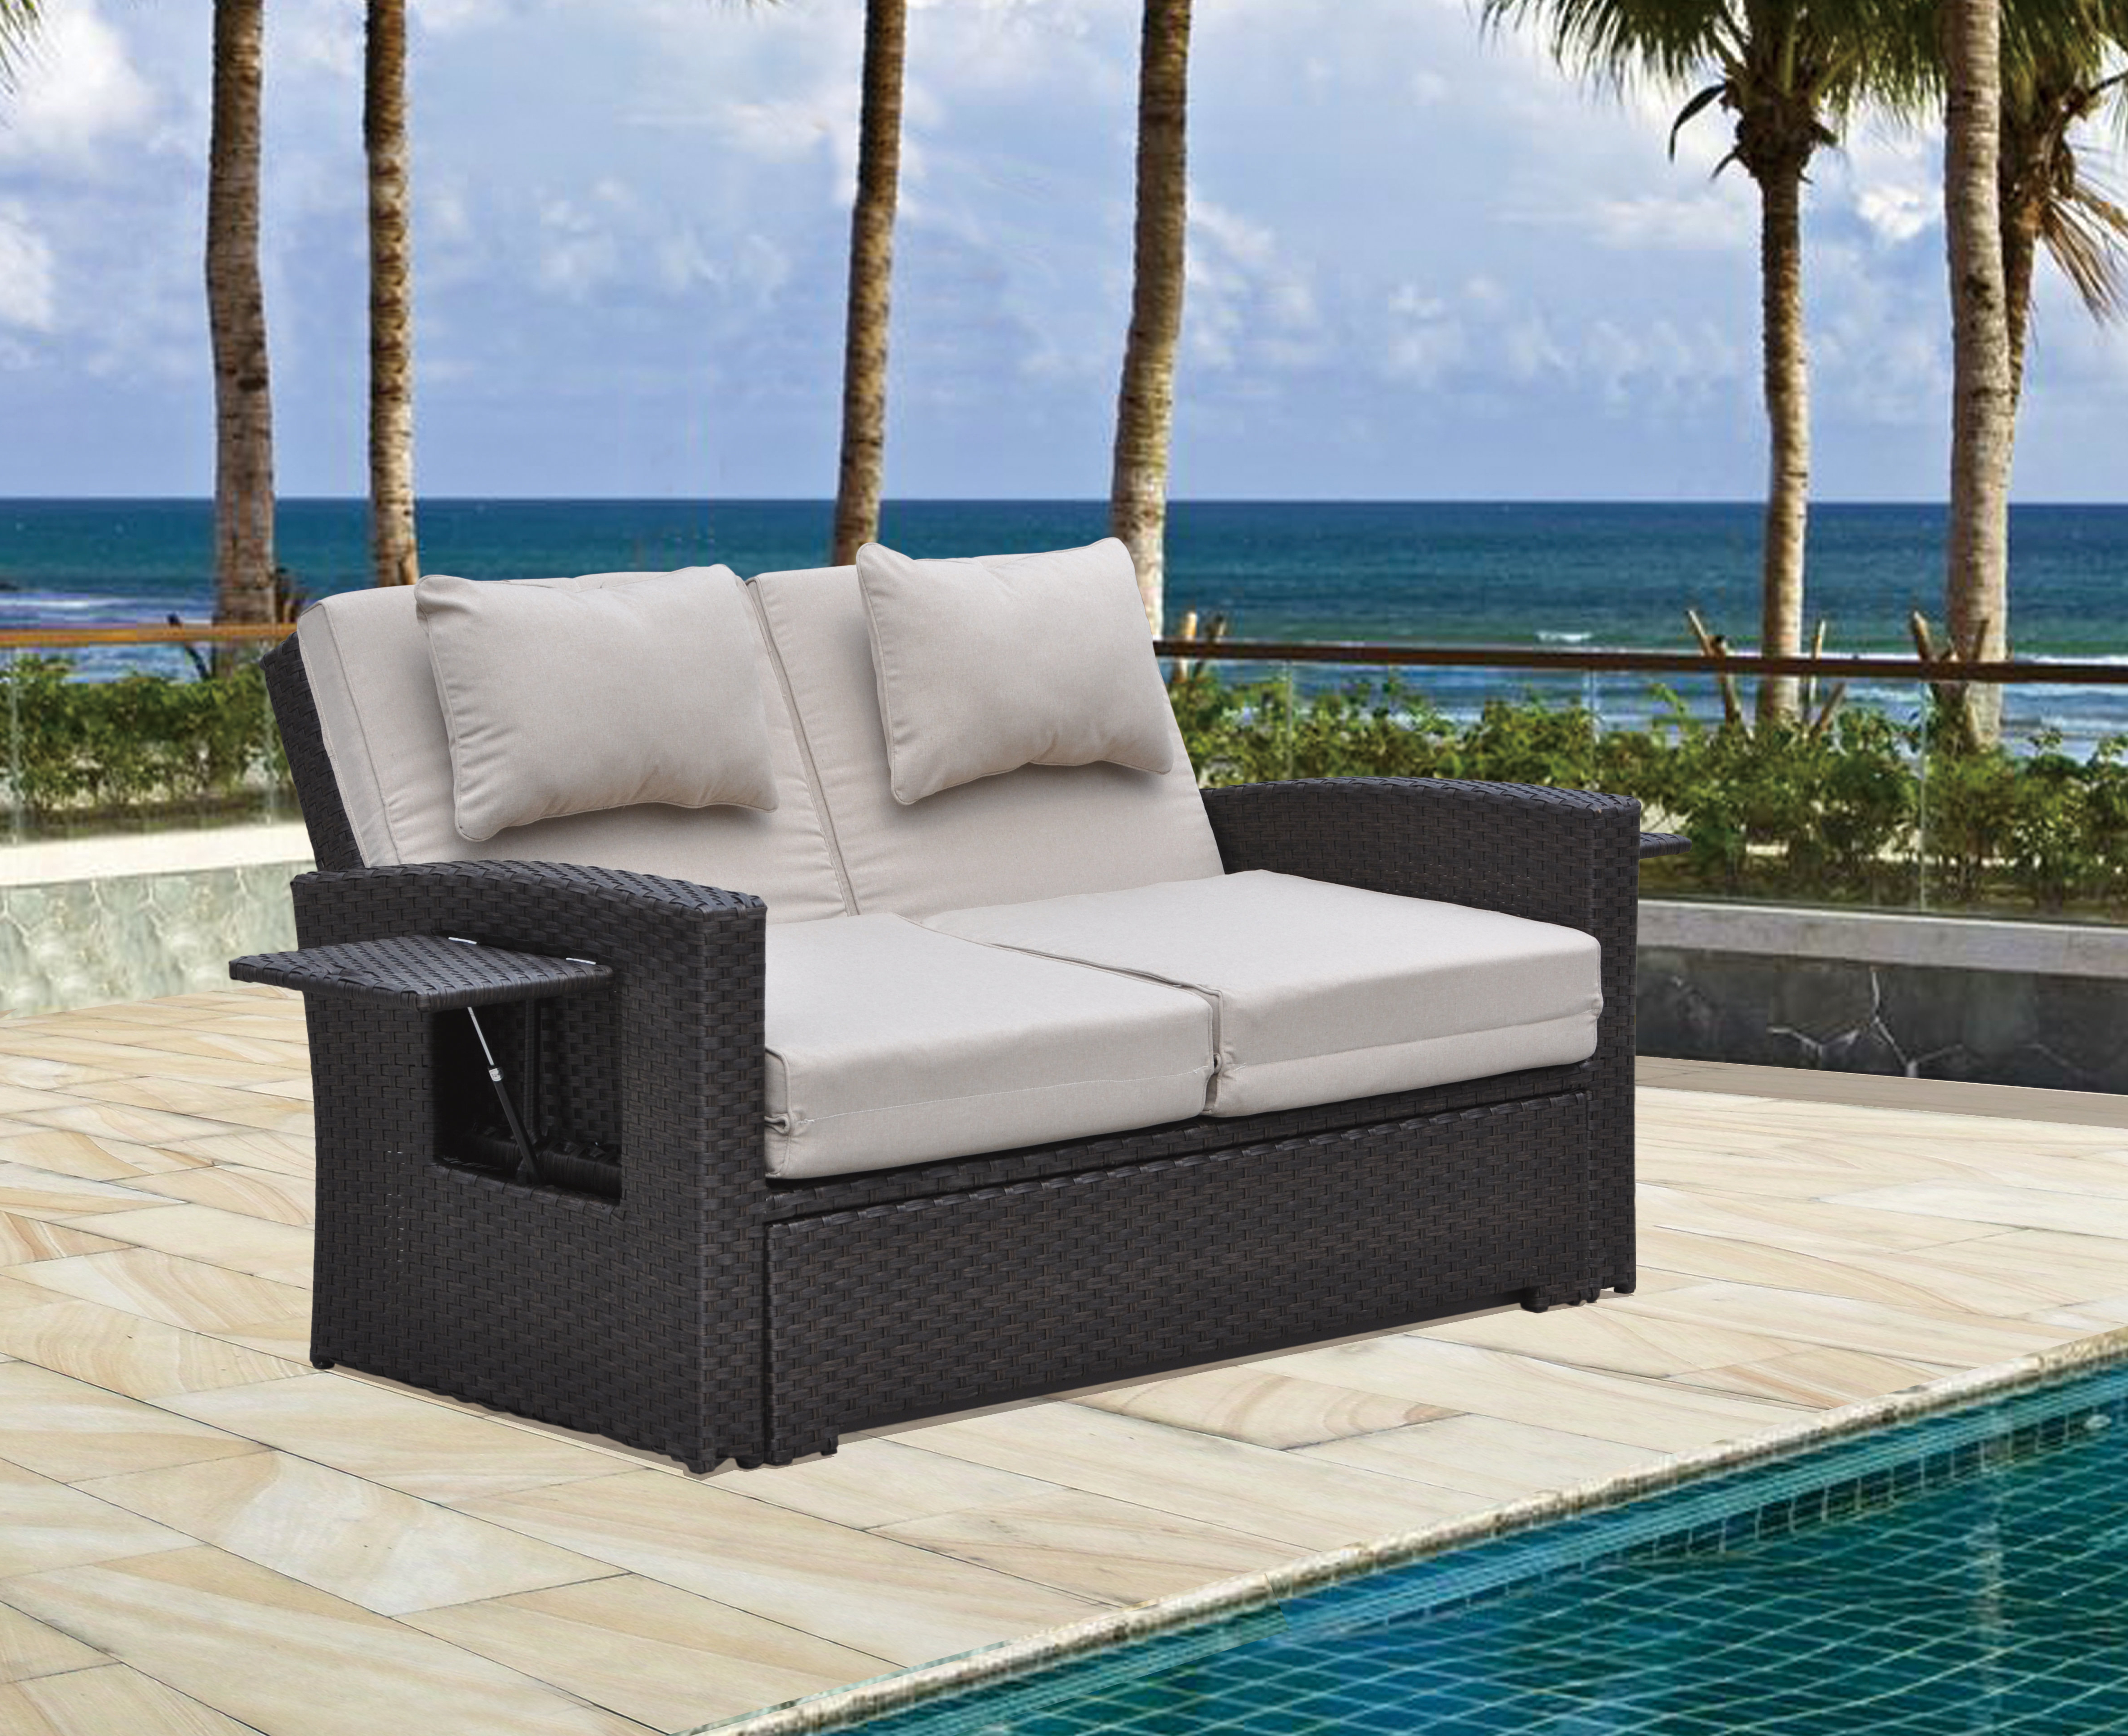 Betts Outdoor Loveseat With Cushions Inside Most Up To Date Loggins Loveseats With Cushions (View 2 of 20)